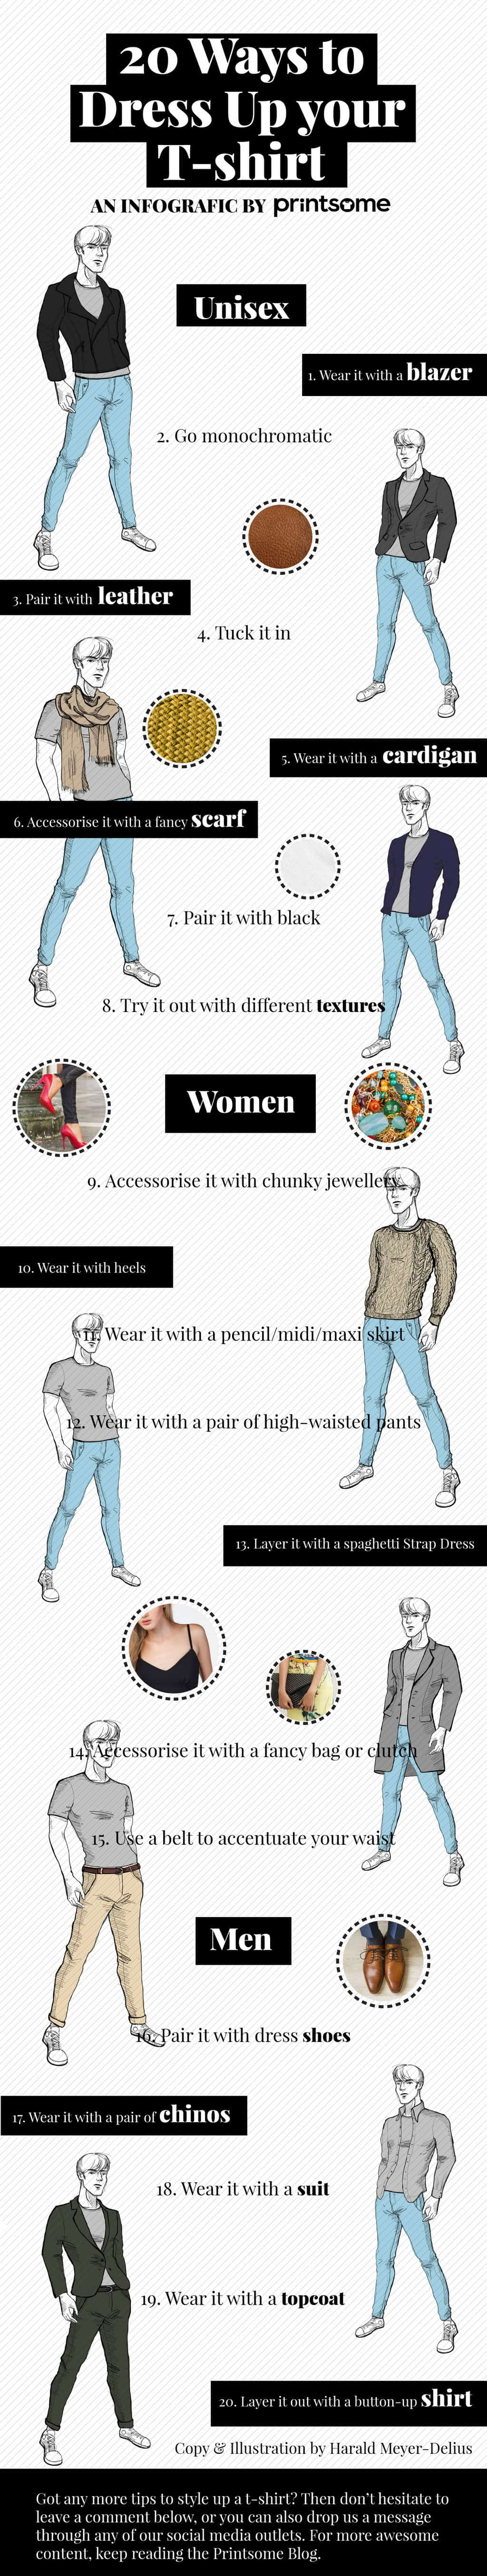 20 simple ways to dress up your t shirt for Ways to design t shirts